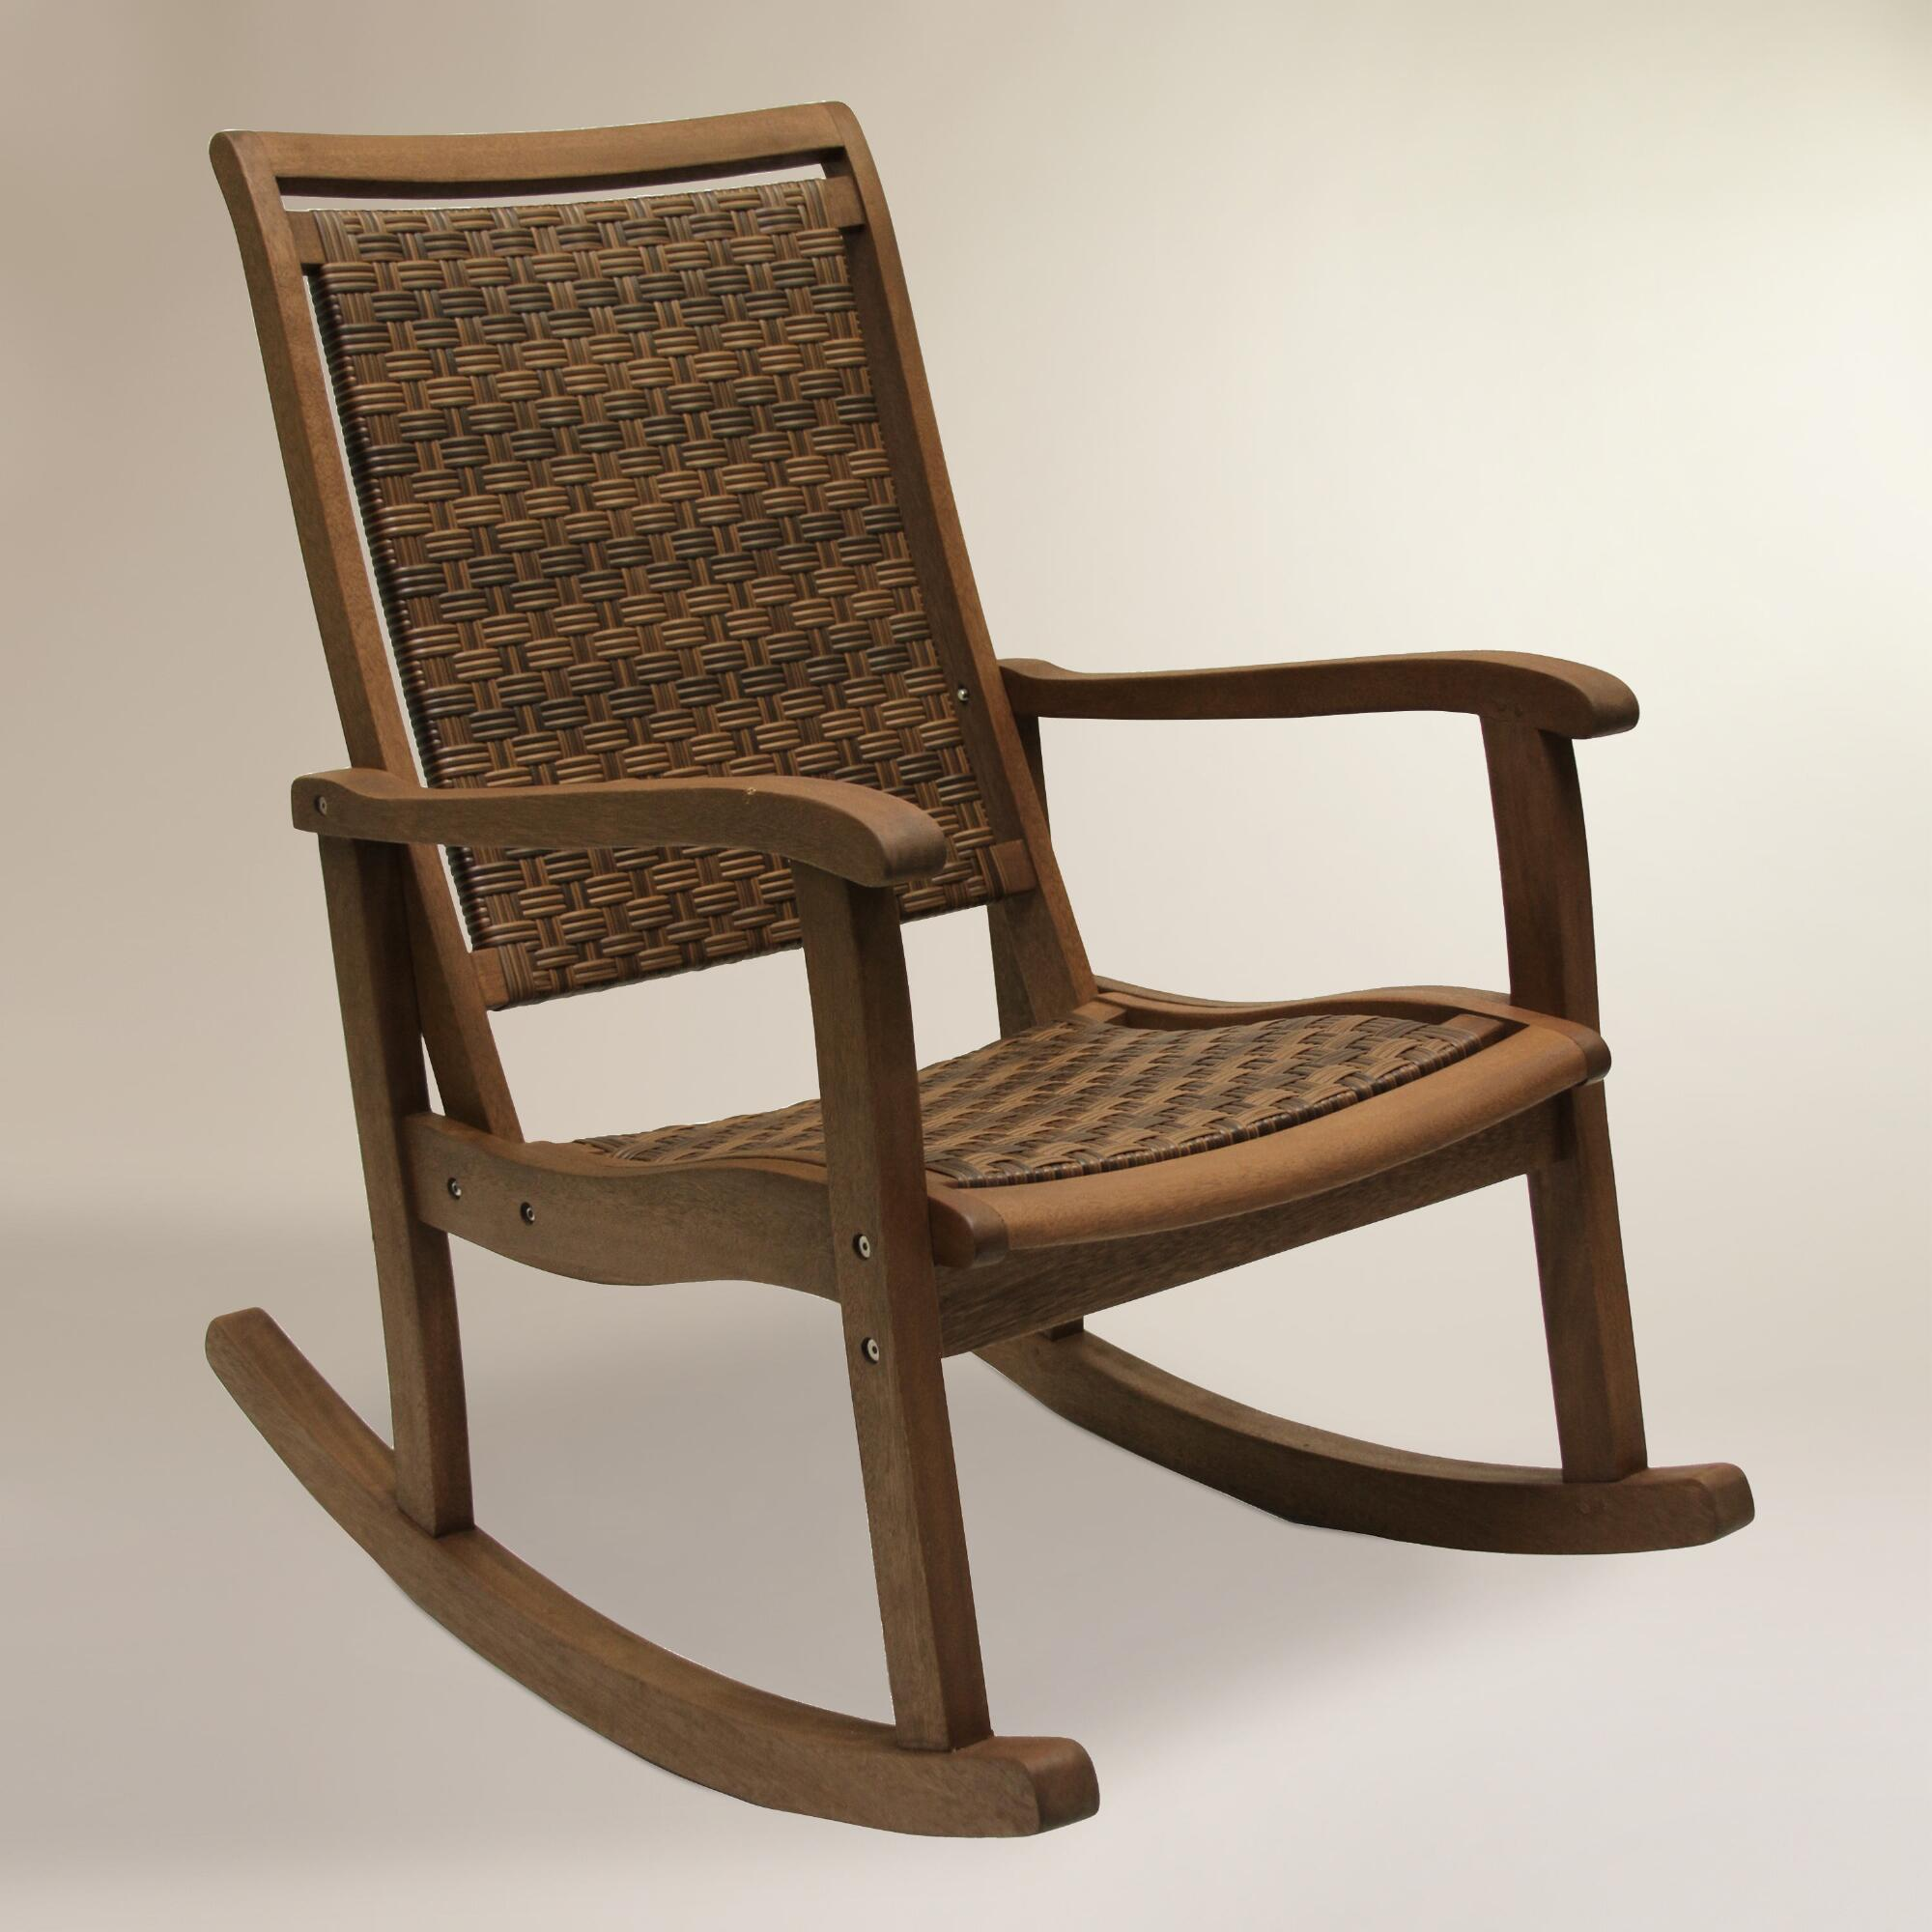 Image of: Outdoor Wicker Rocking Chairs Ideas